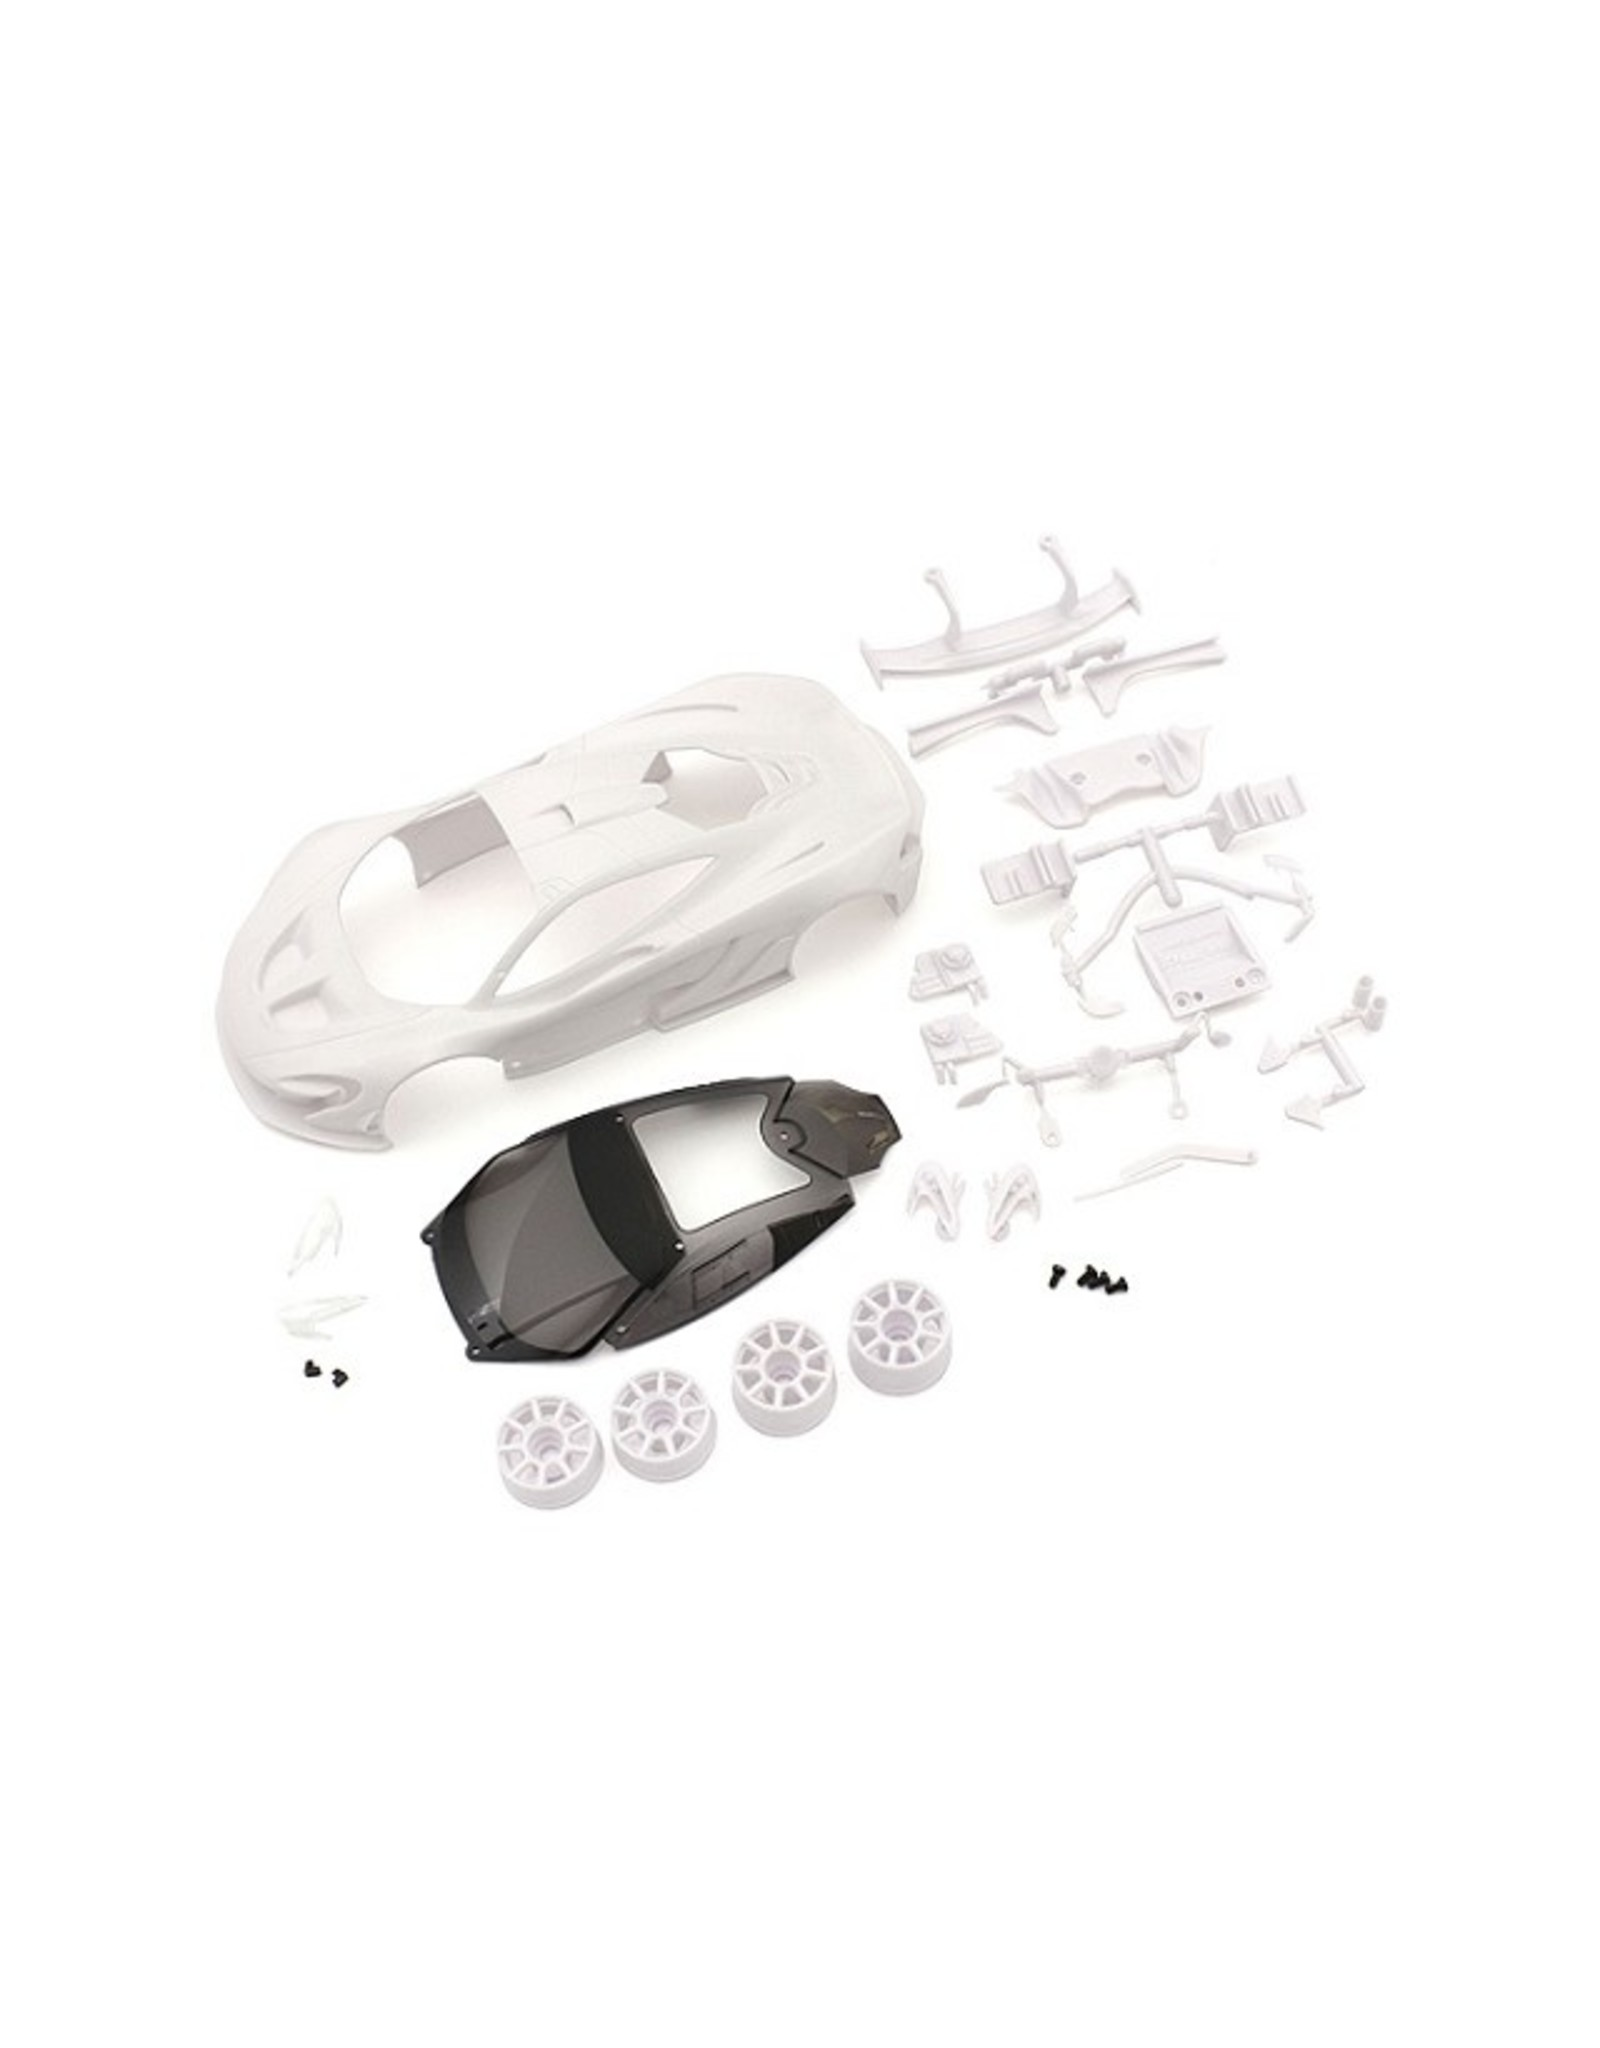 Kyosho McLaren P1 GTR White body set (w/Wheel)  (MZN190)